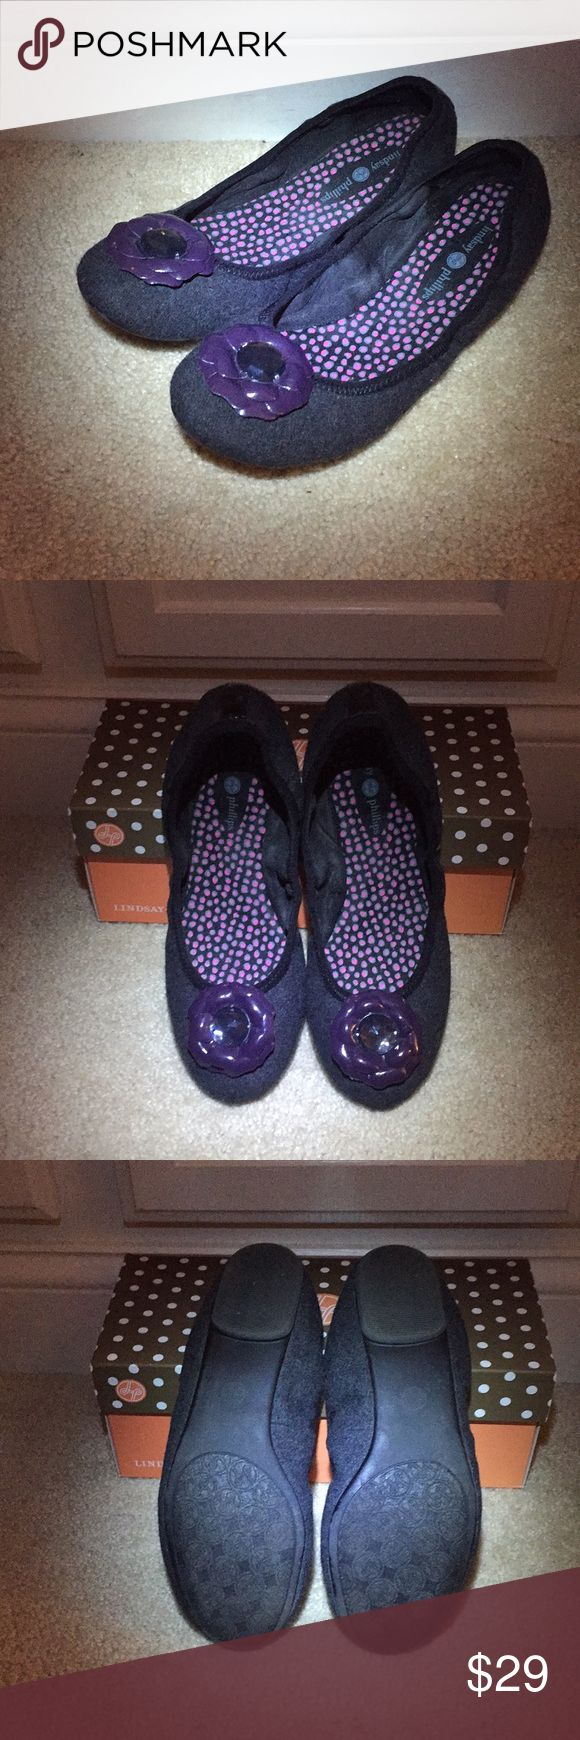 Lindsay Phillips ballet flat Grey flannel with dark purple patent flower snaps. Lightly worn. Lindsay Phillips Shoes Flats & Loafers